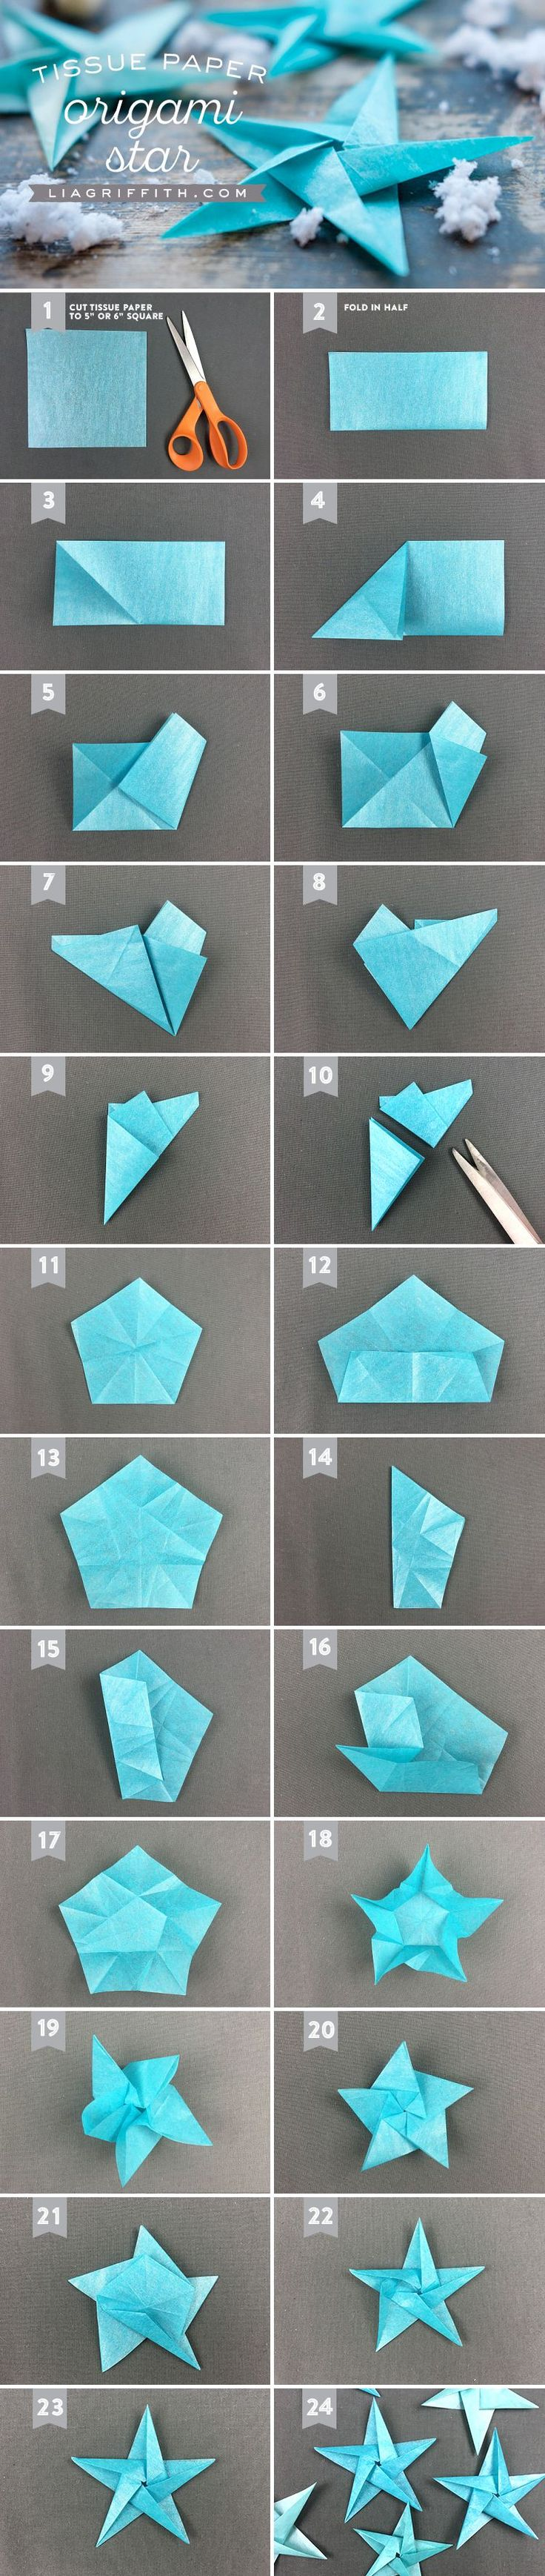 Best 25 origami ideas on pinterest diy origami origami for How to make easy crafts step by step